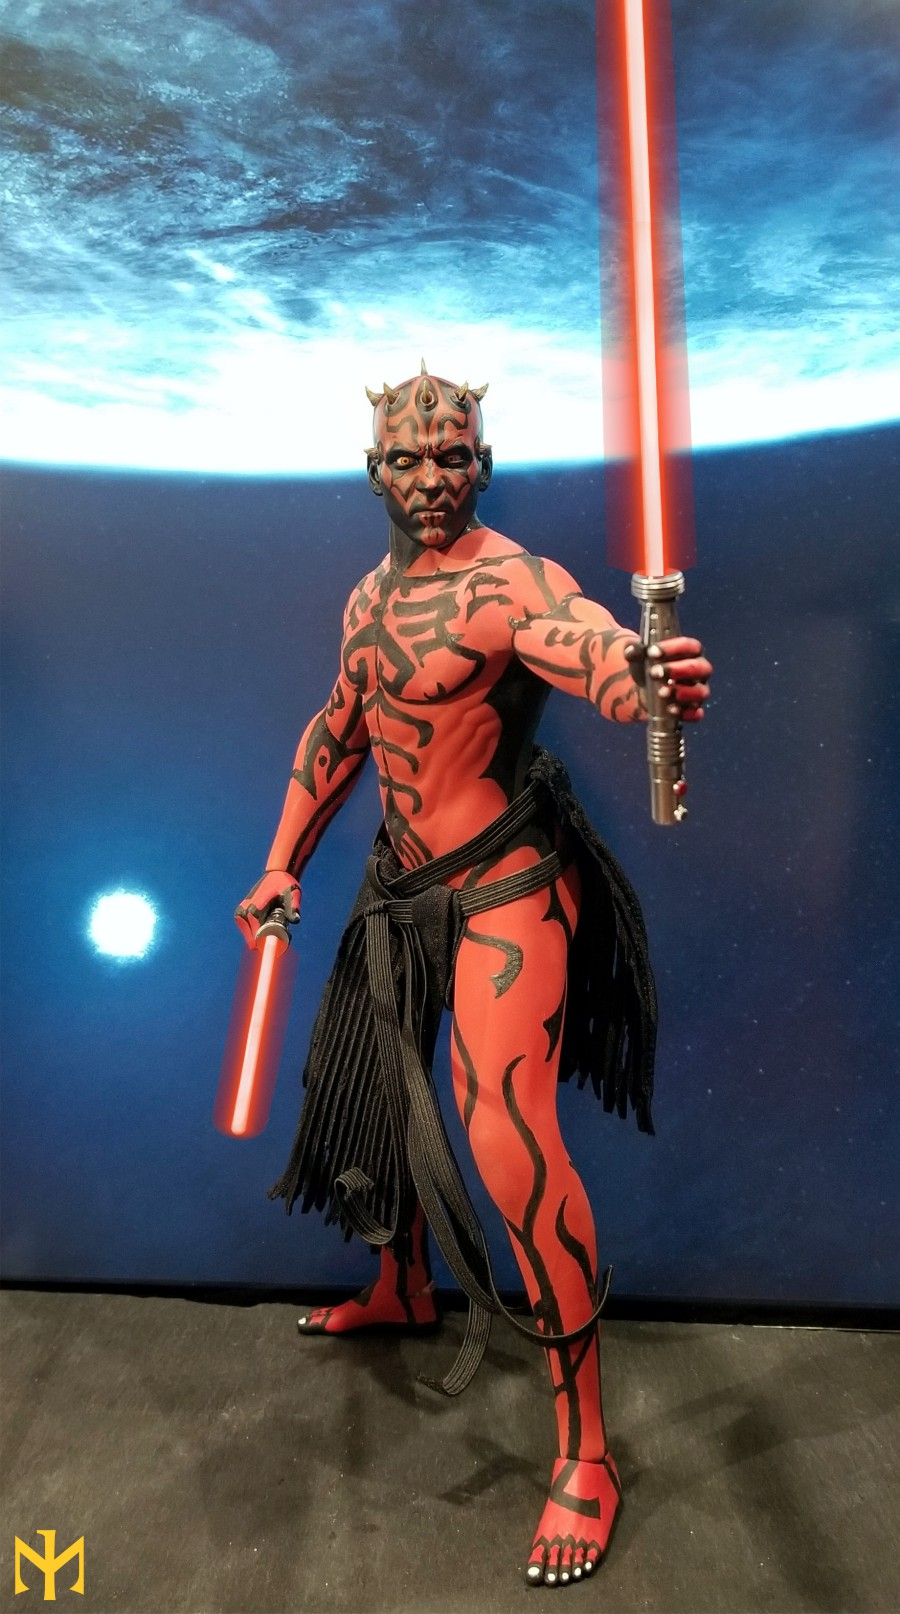 STAR WARS Updated Darth Maul Custom Part IV Maul 2.0 (photo heavy) Swdmt228